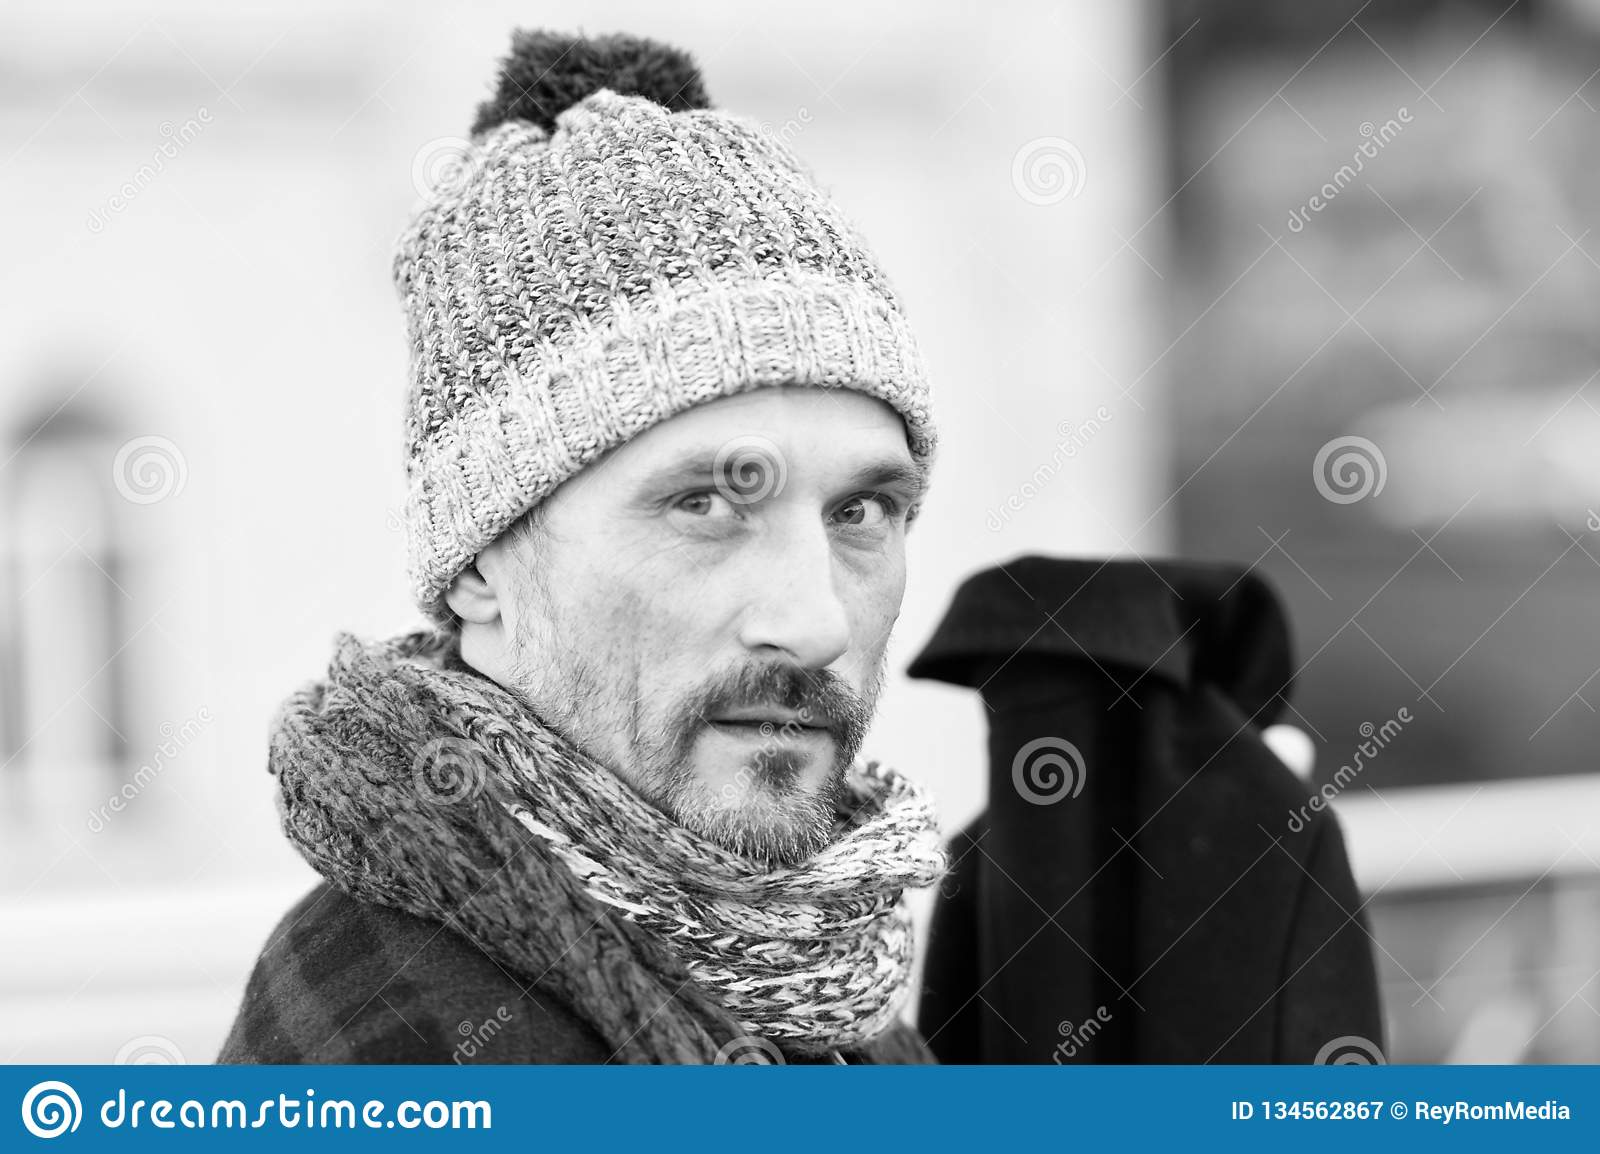 27454c7b0dd Portrait of stylish middle aged bearded man wearing woolly hat and being  thoughtful while looking at you with calmness in his eyes